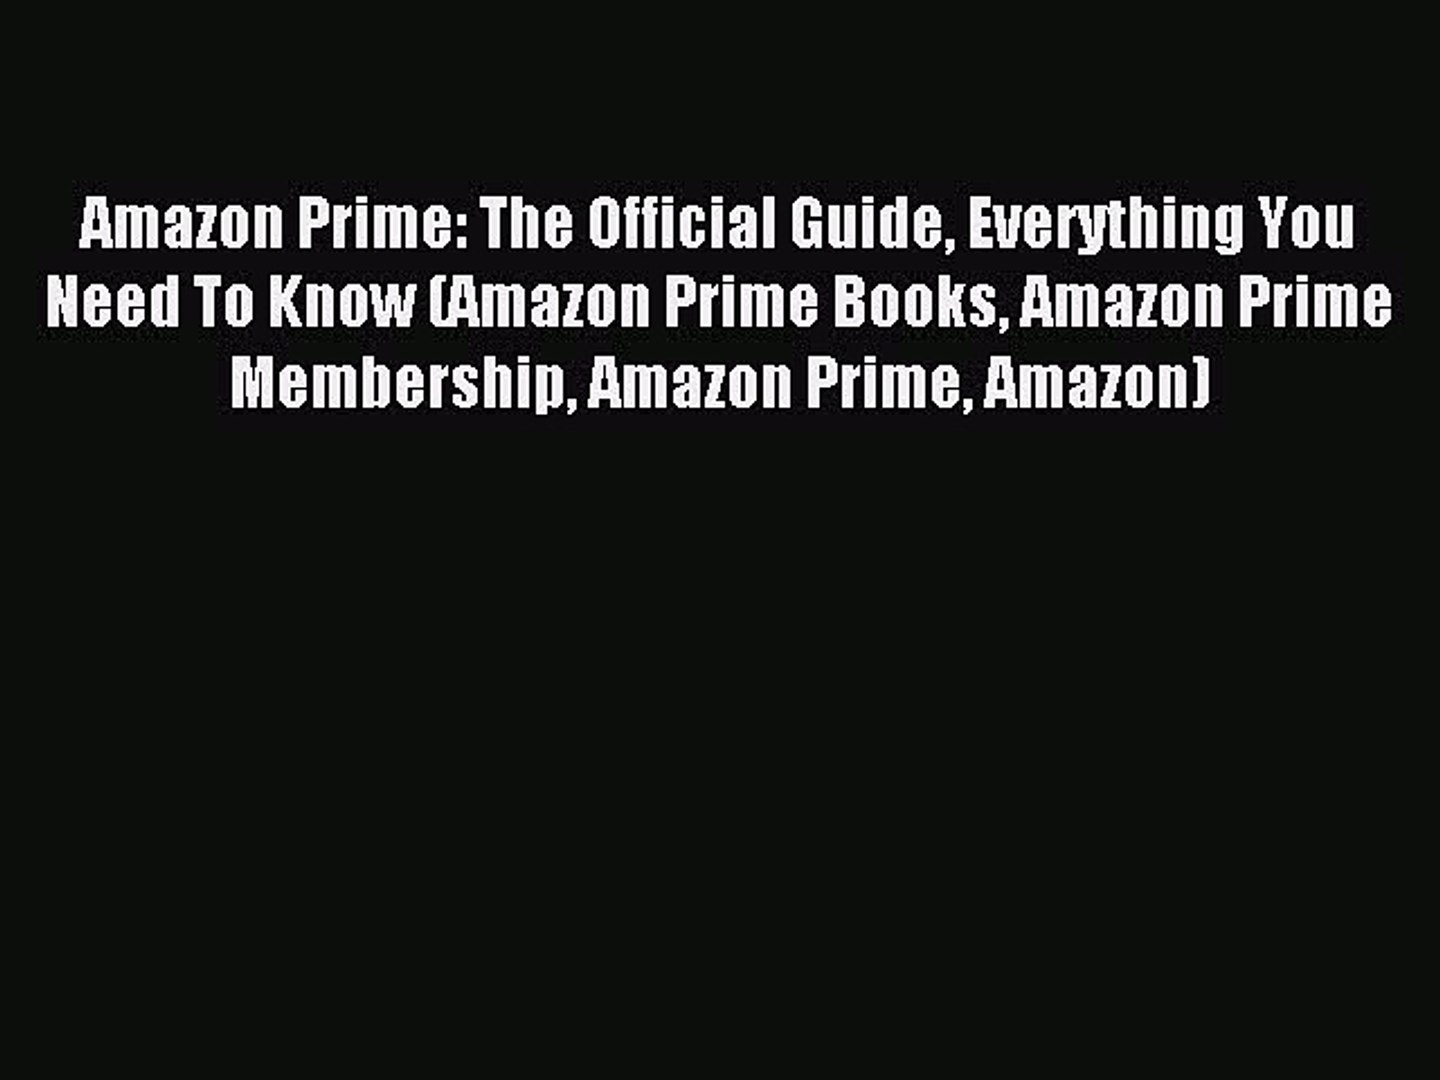 Read Amazon Prime: The Official Guide Everything You Need To Know (Amazon Prime Books Amazon